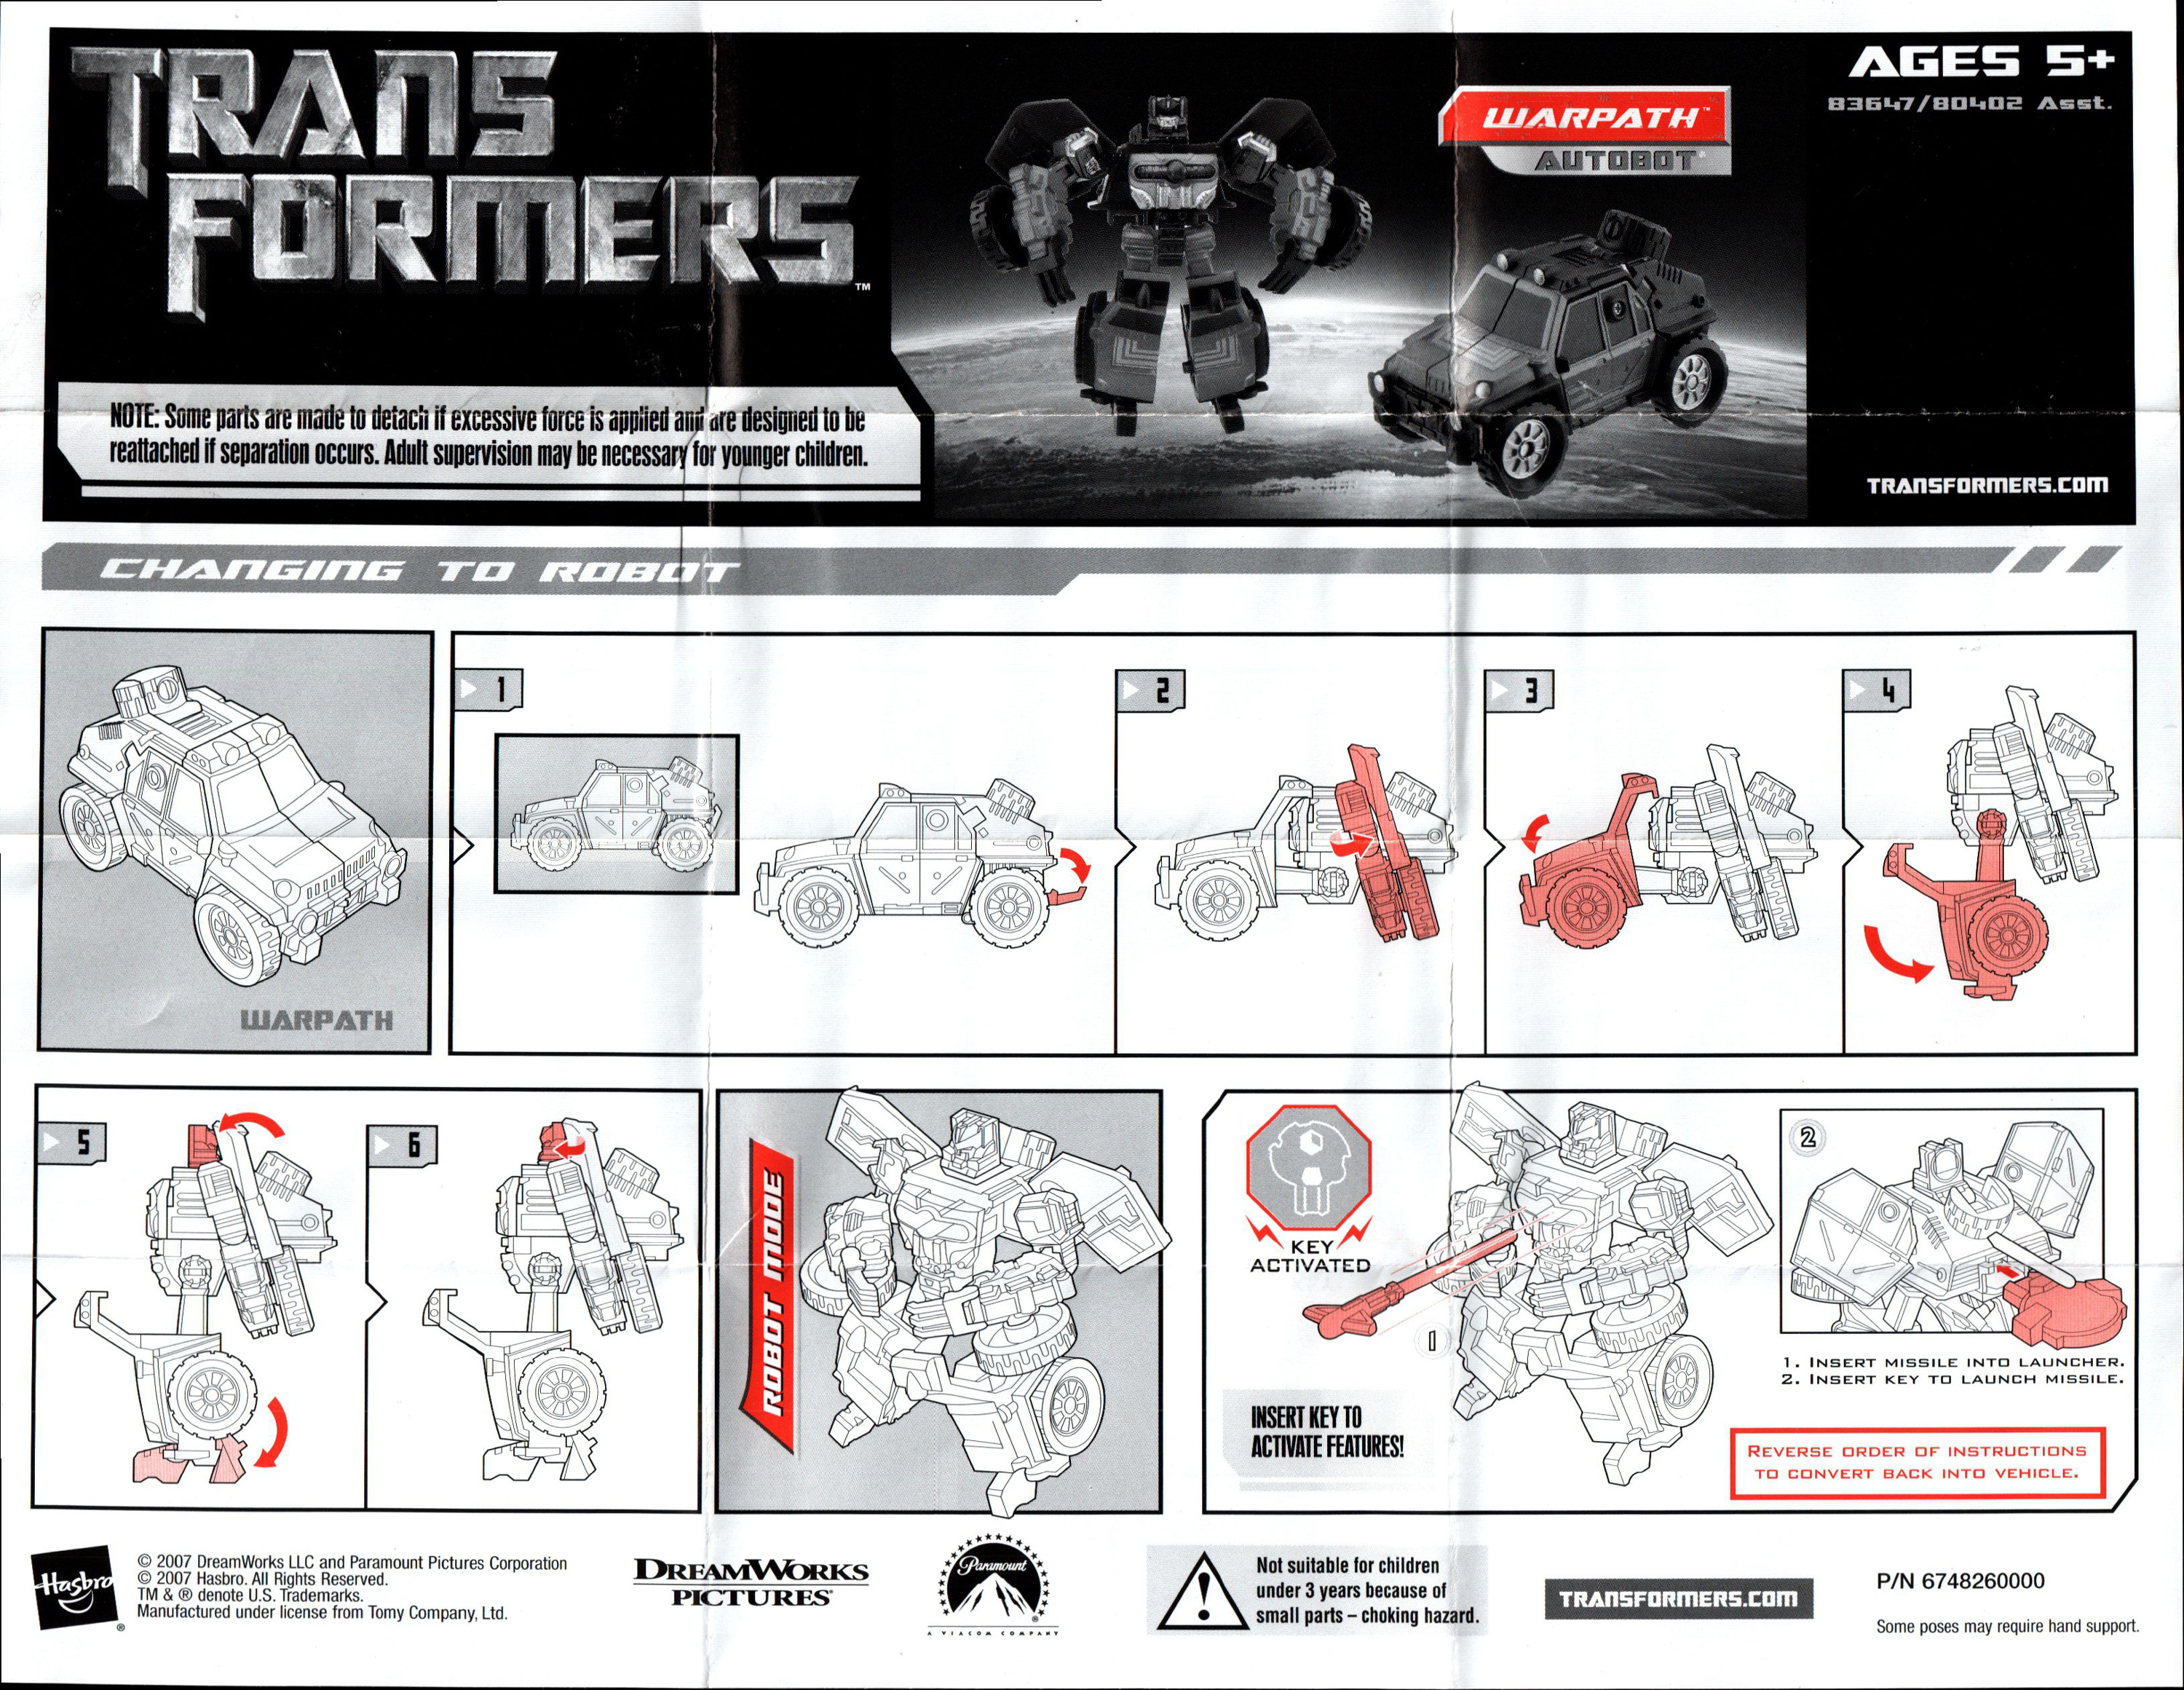 Target Toy Guide : Scout class warpath transformers movie autobot